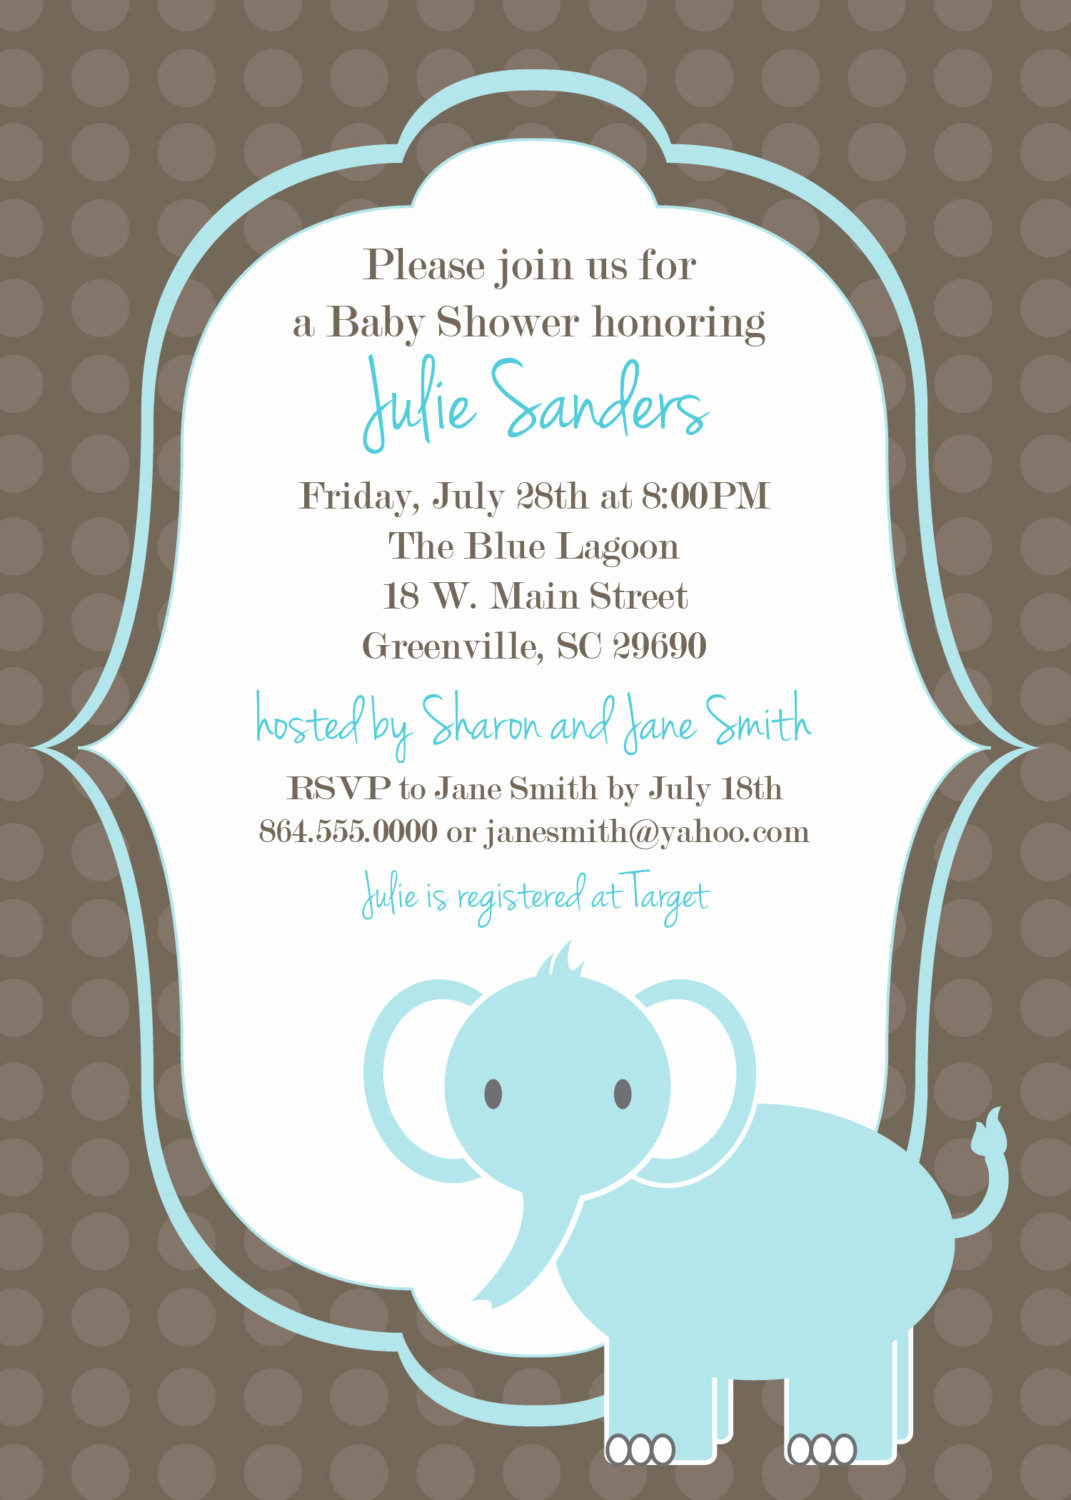 Printable Baby Shower Invitation Templates Luxury Printable Baby Shower Invitation Elephant Boy by Ohcreative E